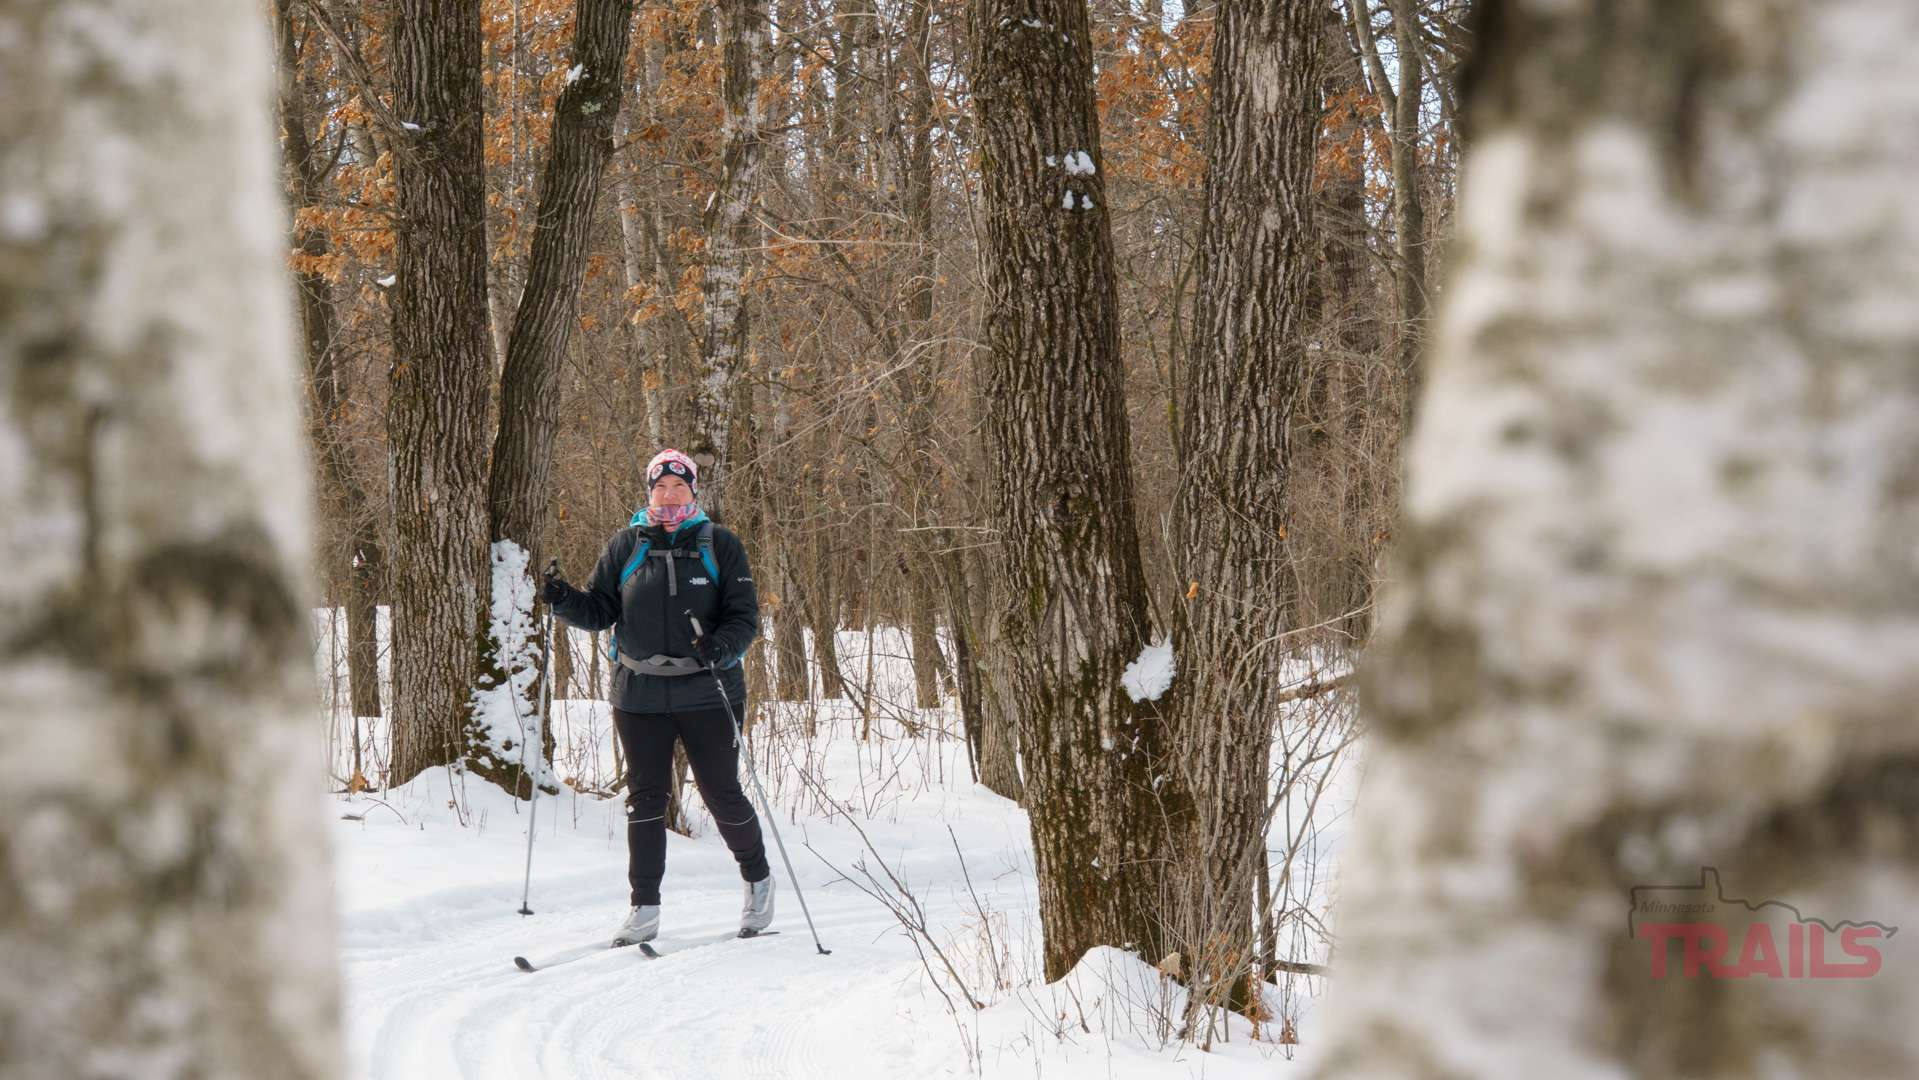 A woman skis through a forest